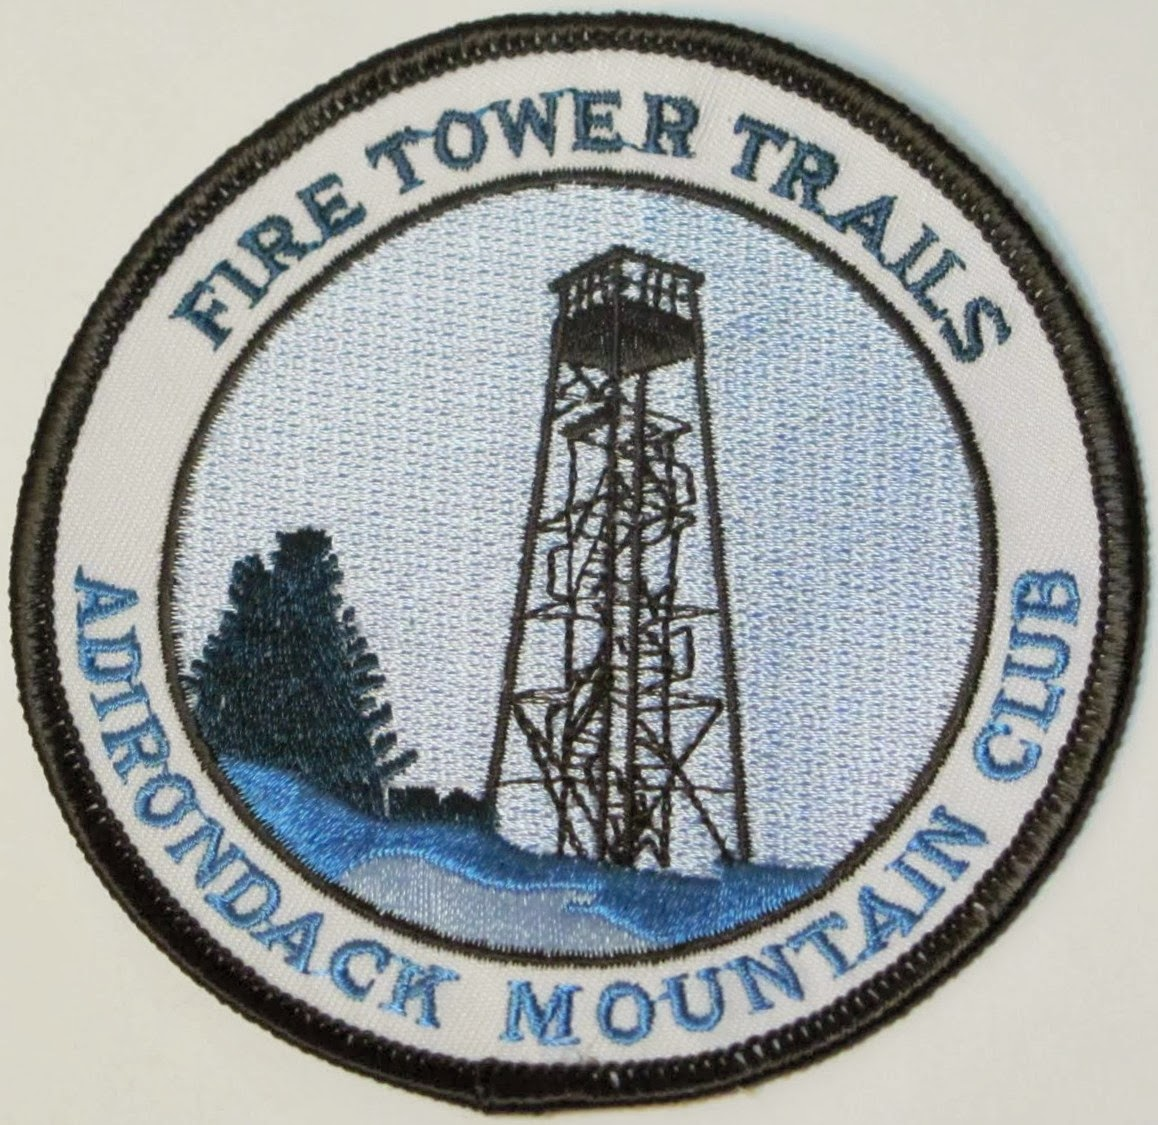 ADK Fire tower Challenge